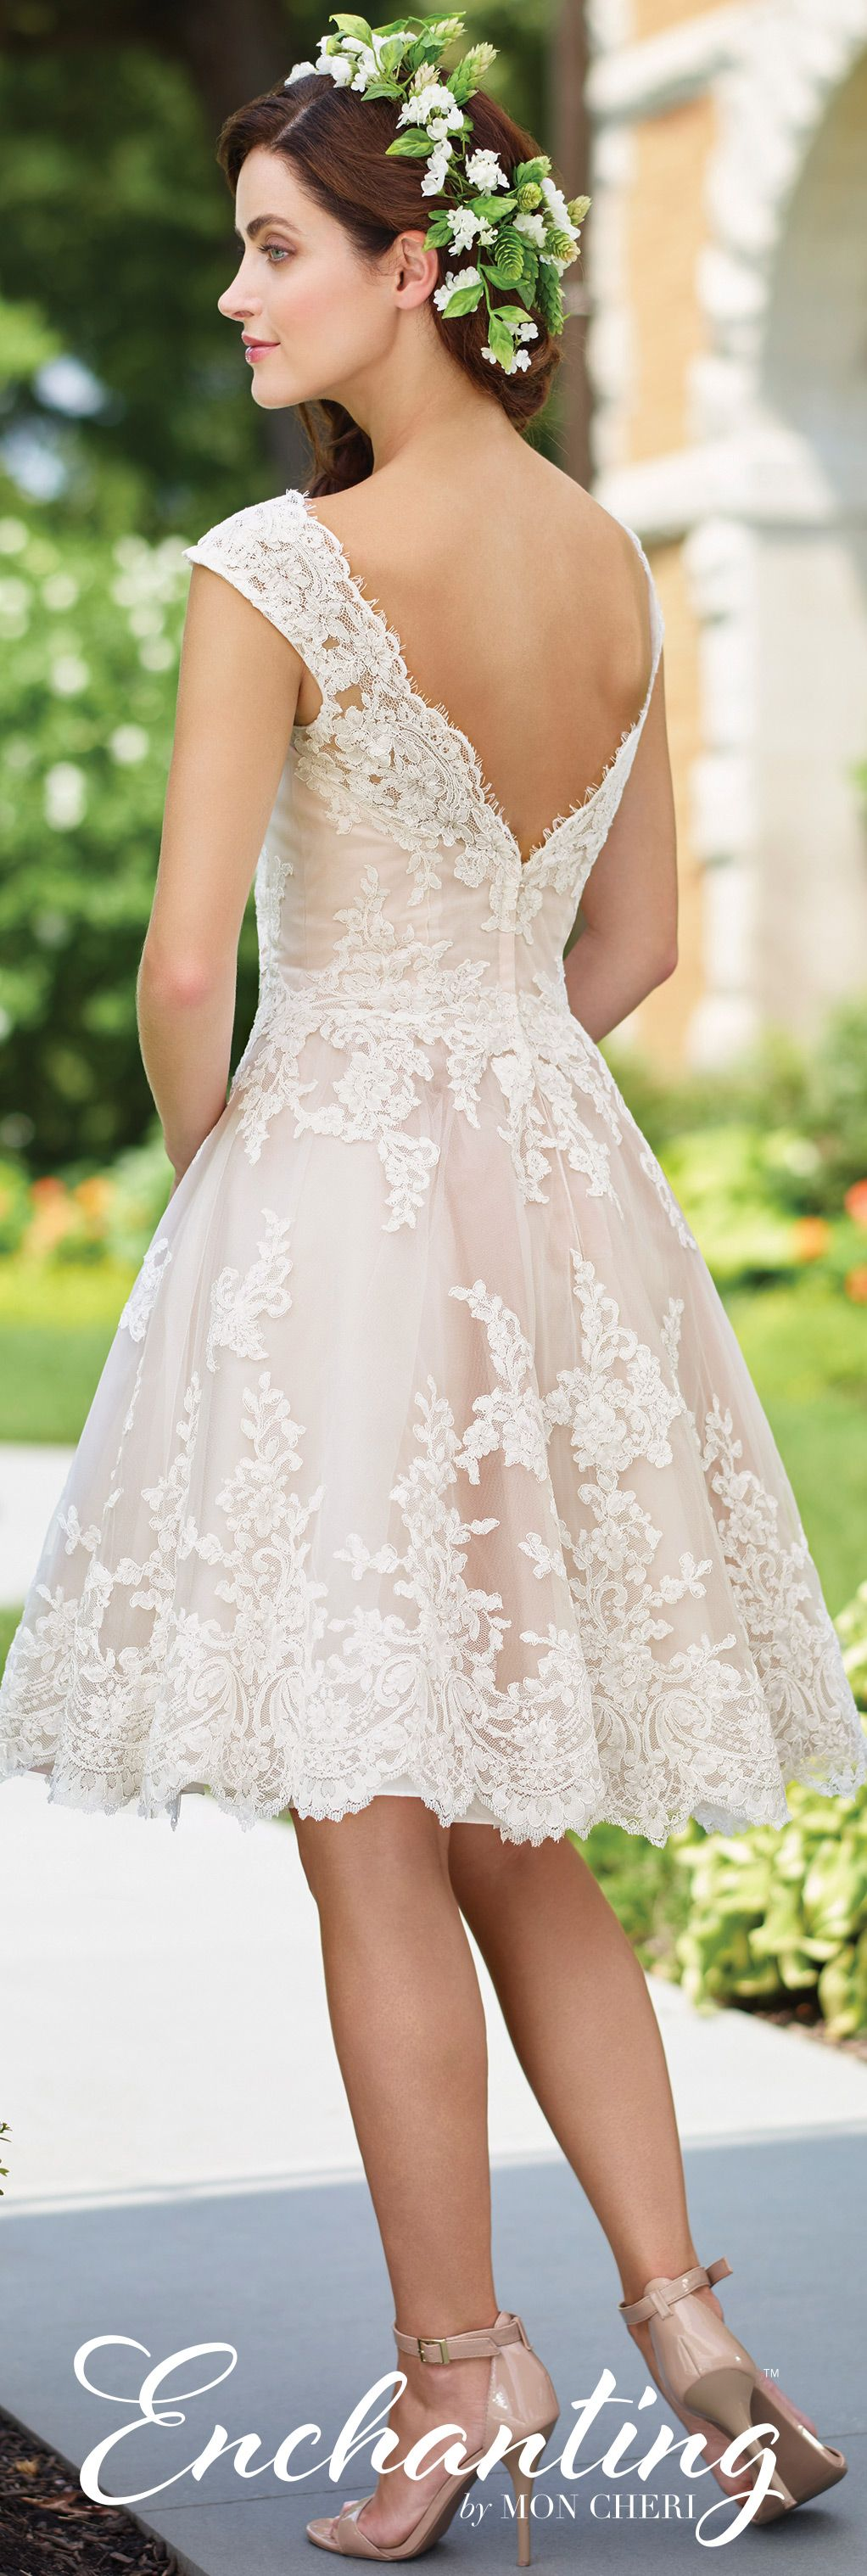 Modern Wedding Dresses 2019 By Mon Cheri Enchanting By Mon Cheri